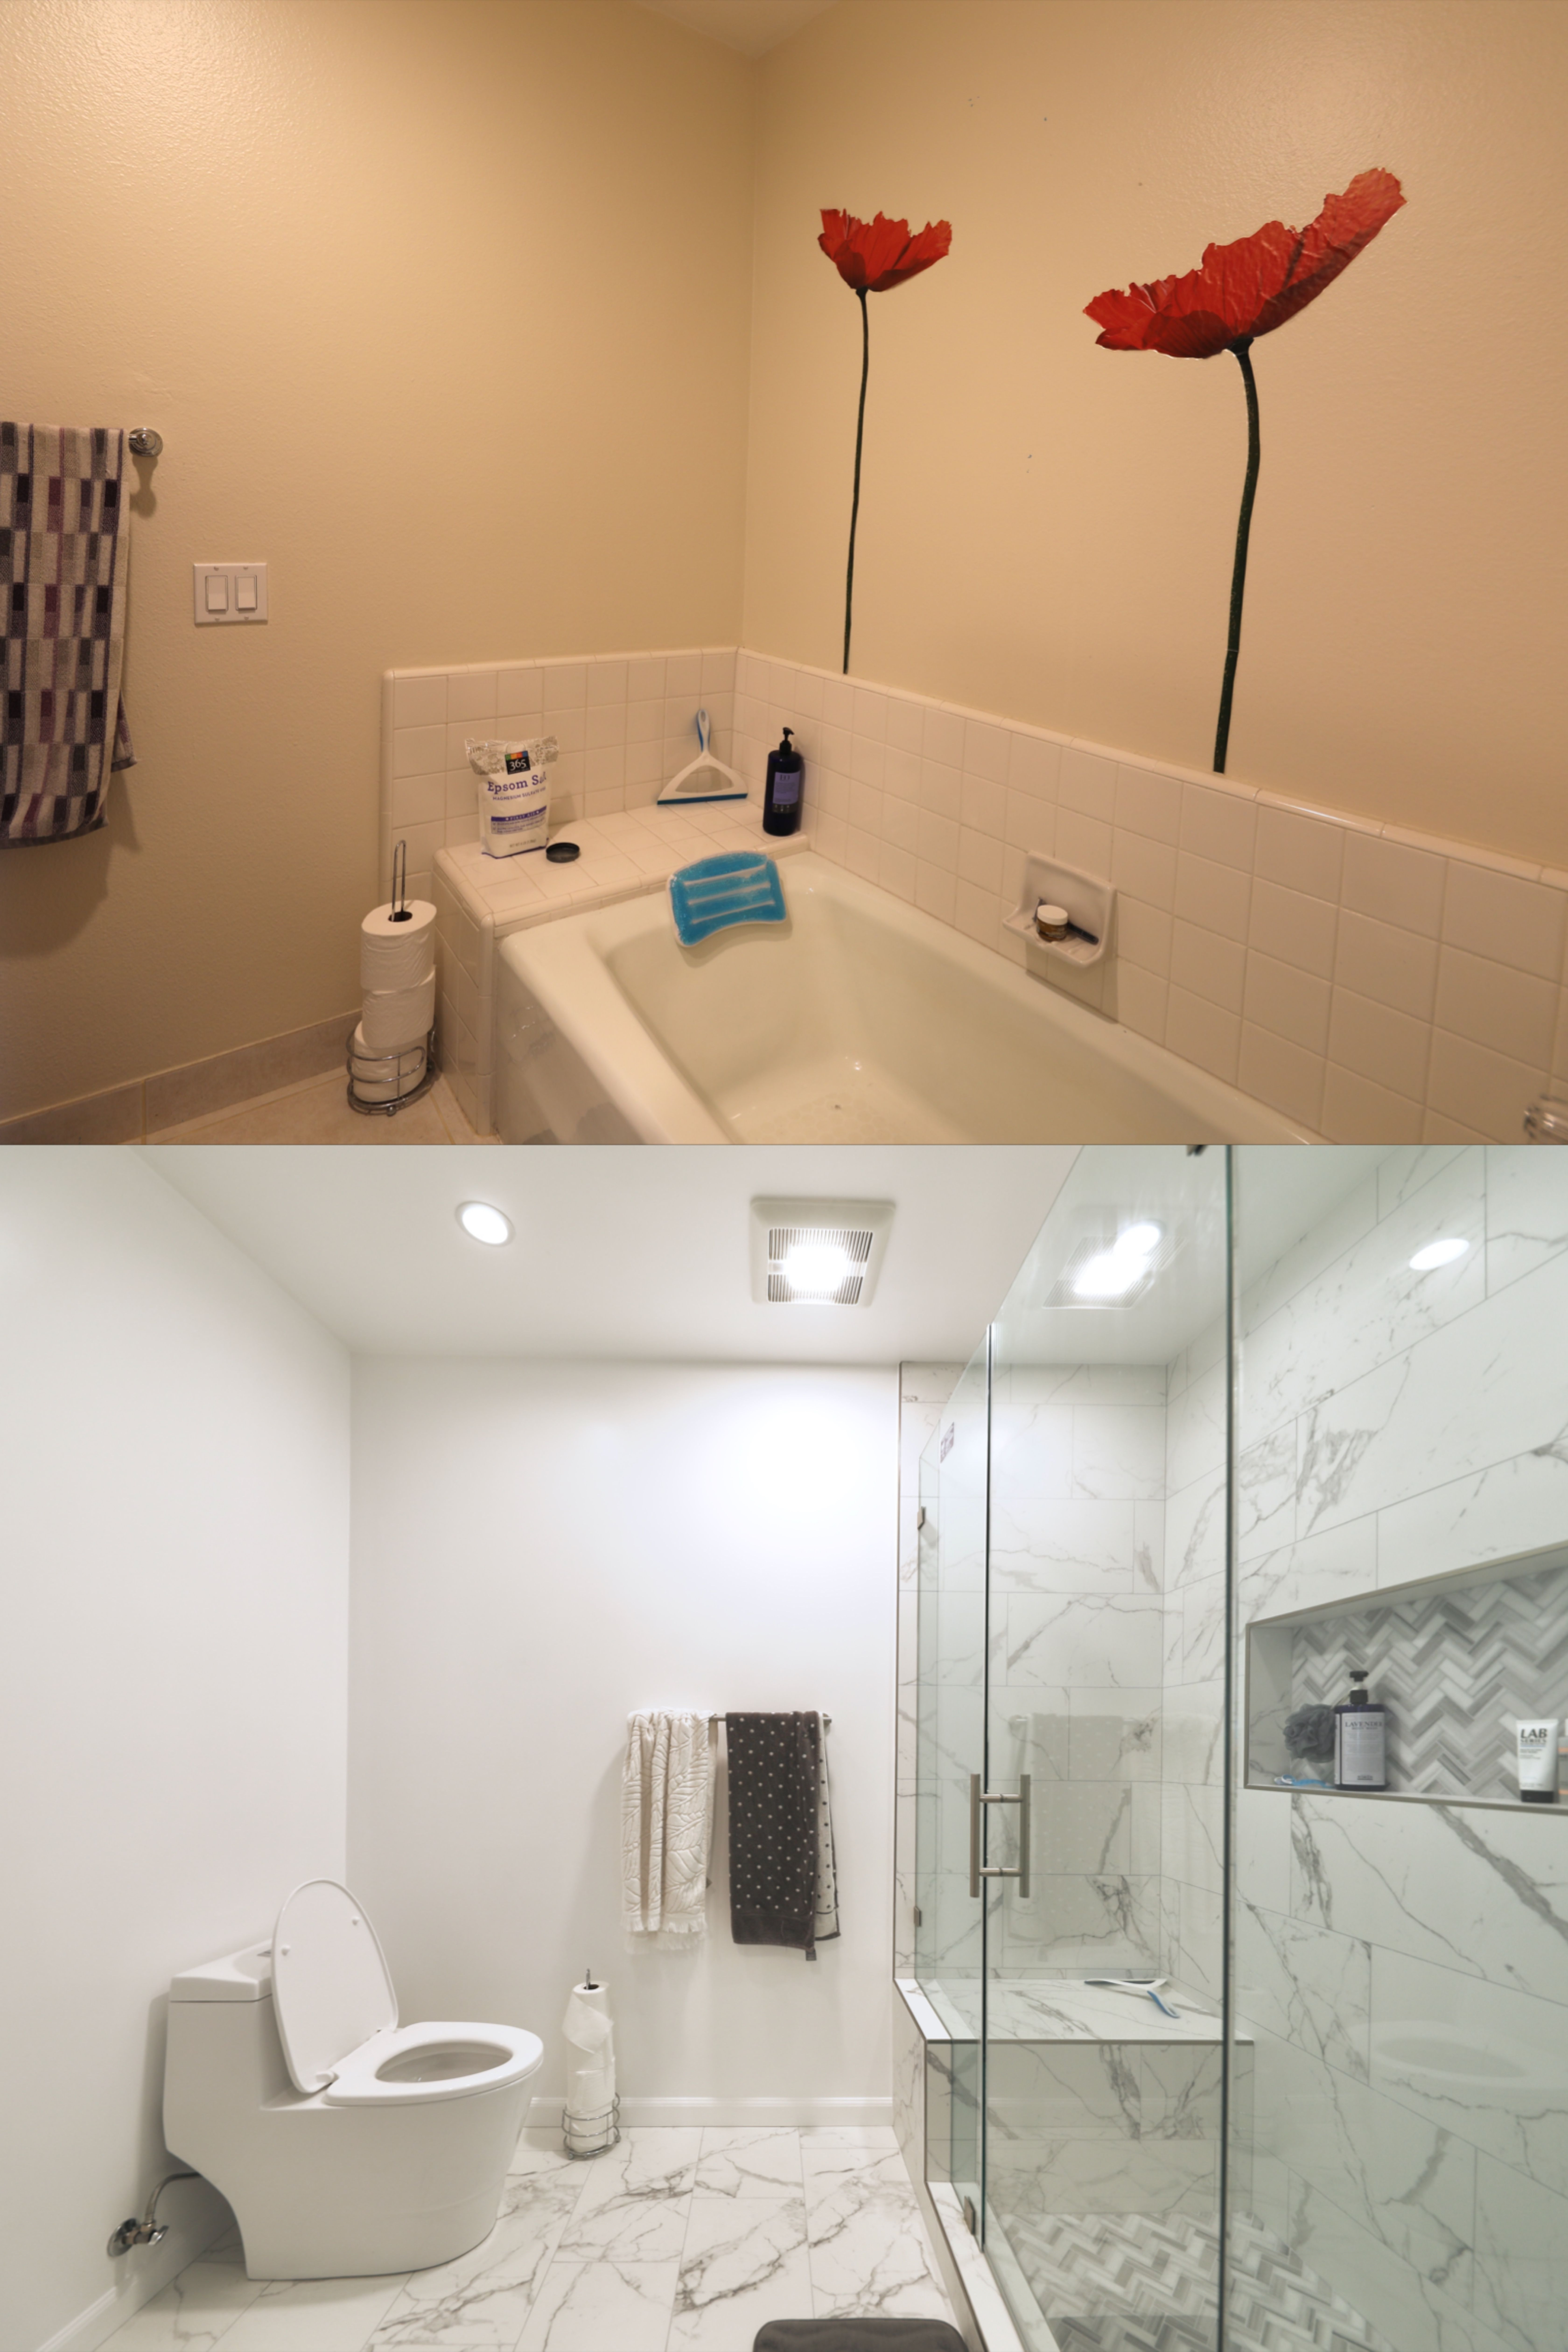 Before After A Luxury Bathroom Remodeling Project In Los Angeles In 2020 Bathrooms Remodel Bathroom Remodeling Contractors Bathroom Layout